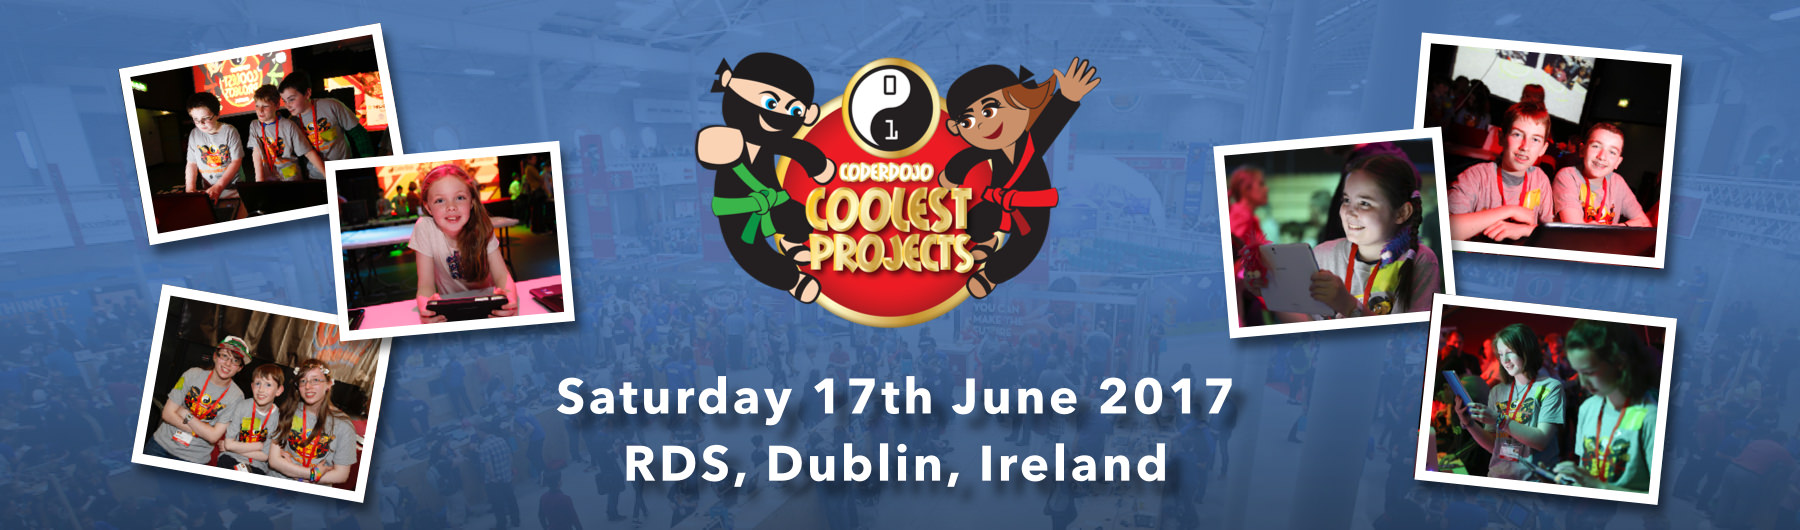 CoderDojo Coolest Projects Showcase 2017